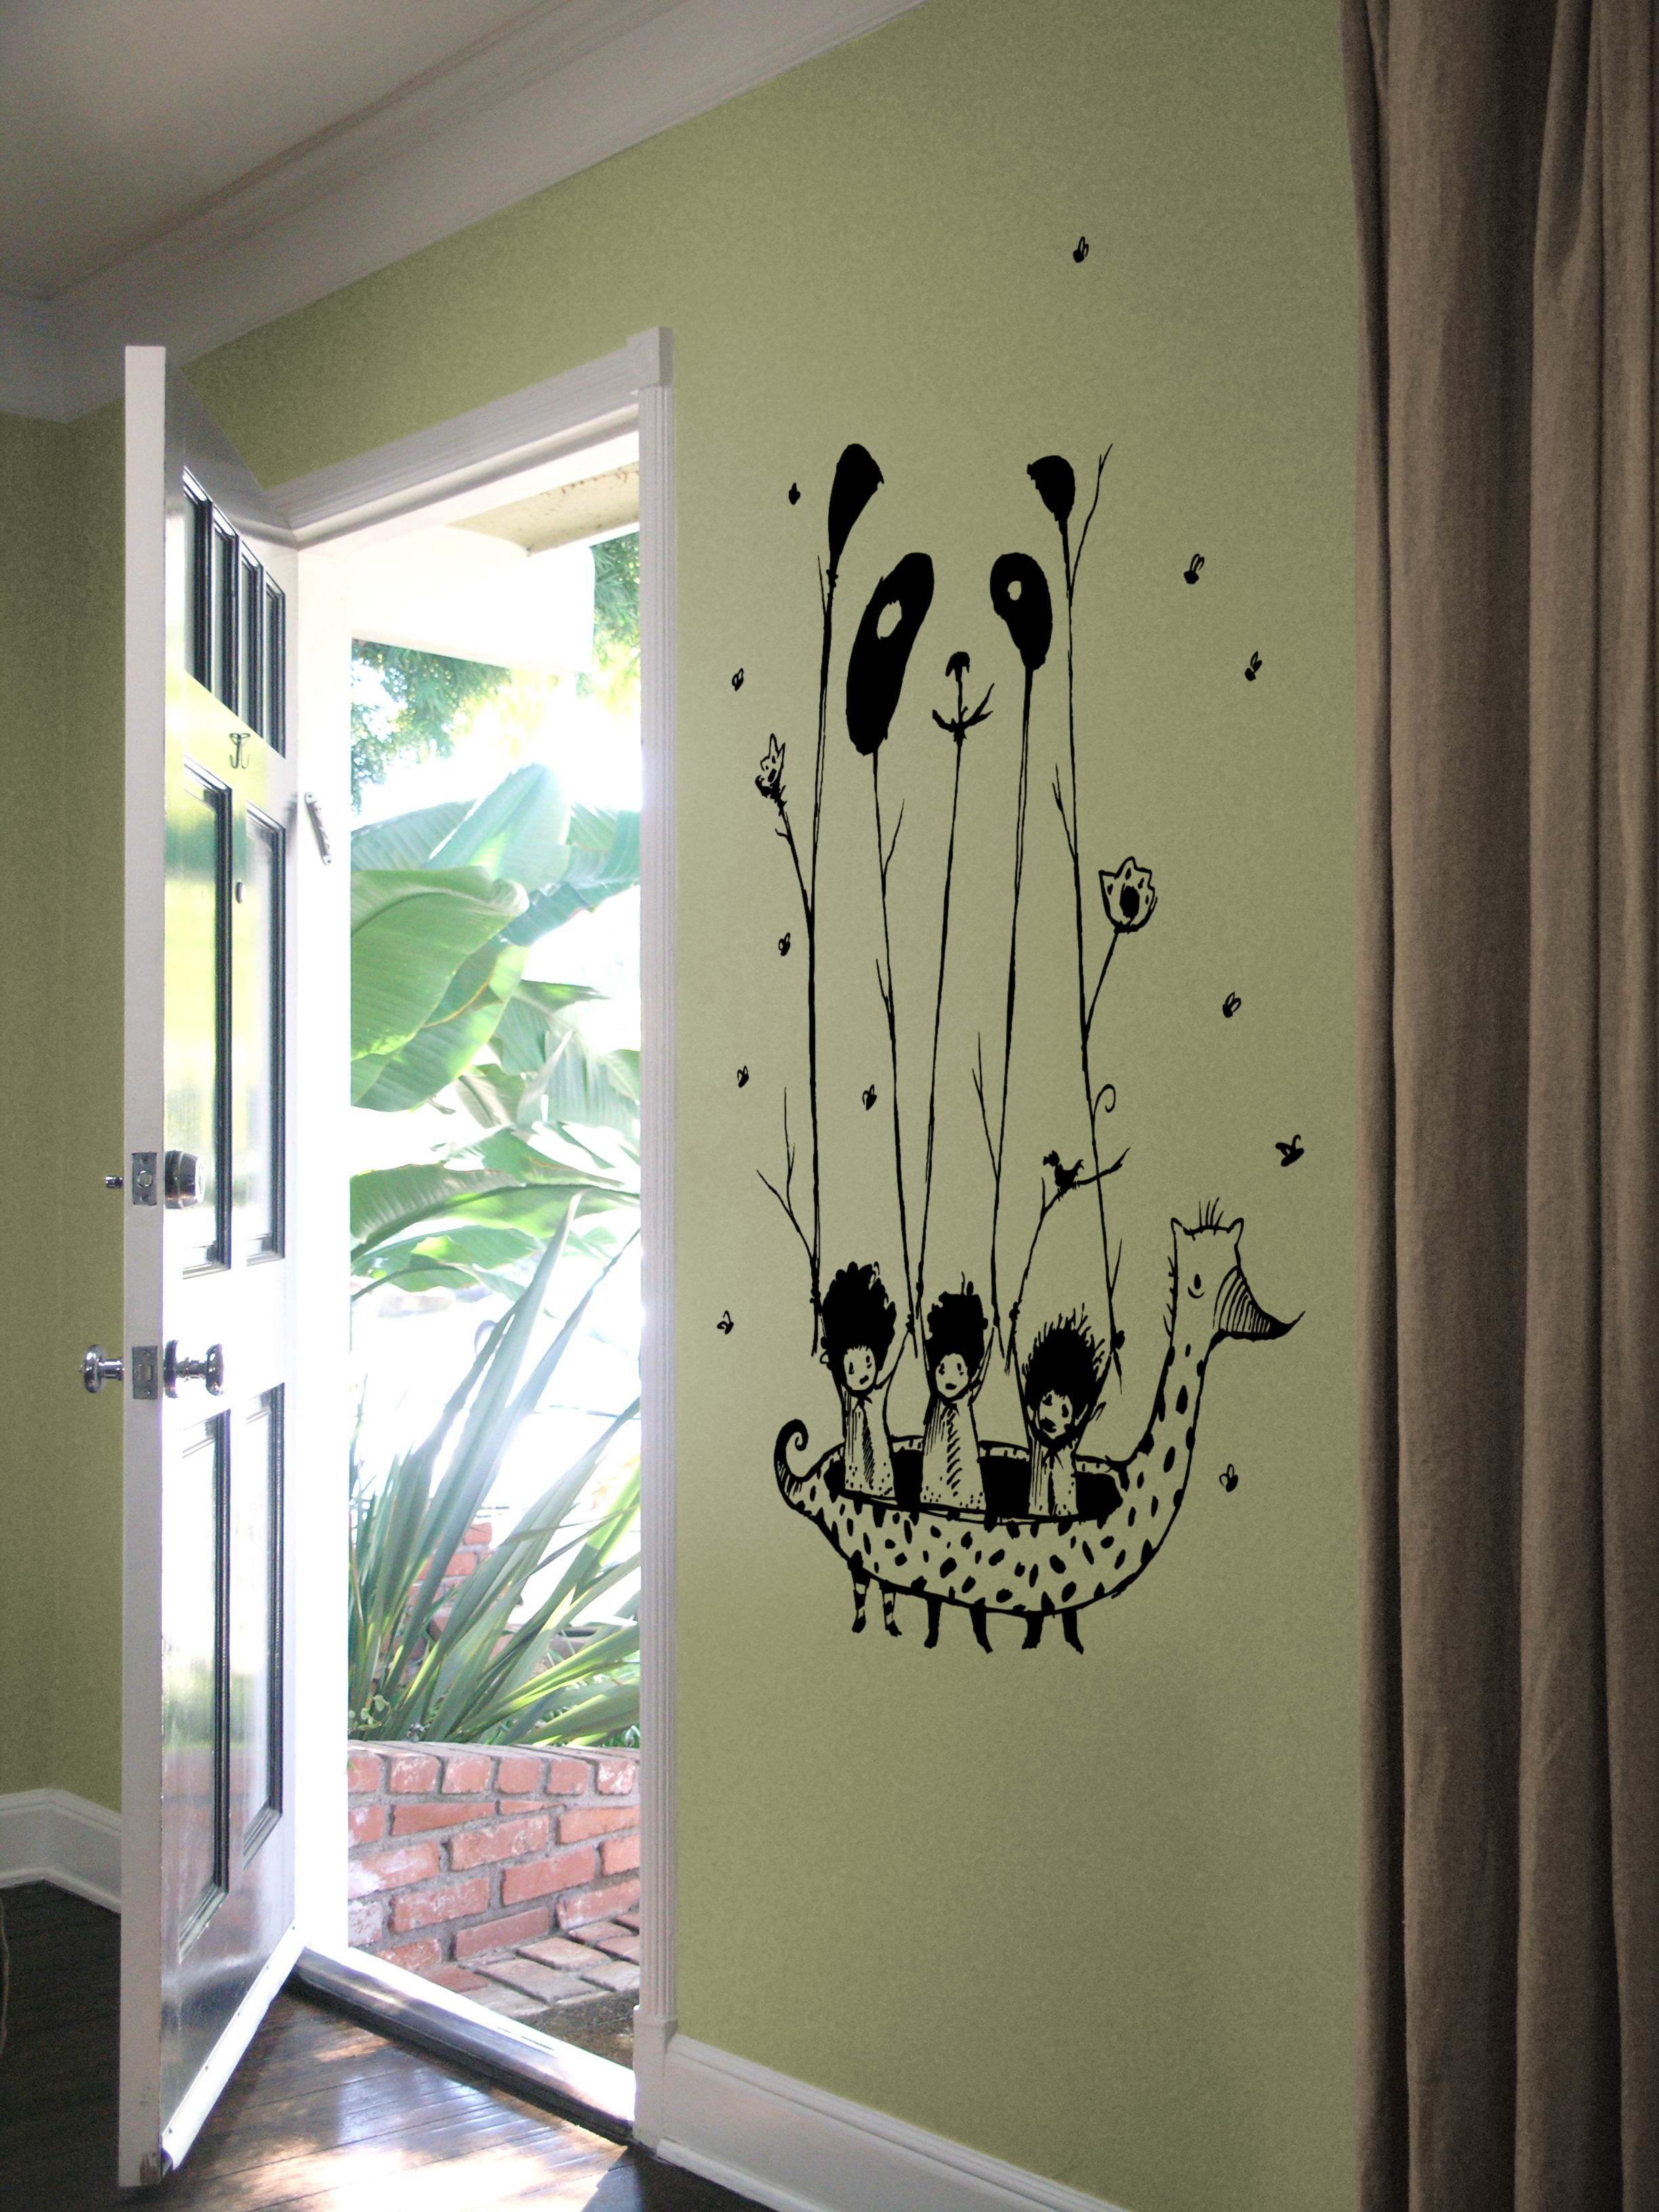 New Wall Graphics By On Line Community Threadless